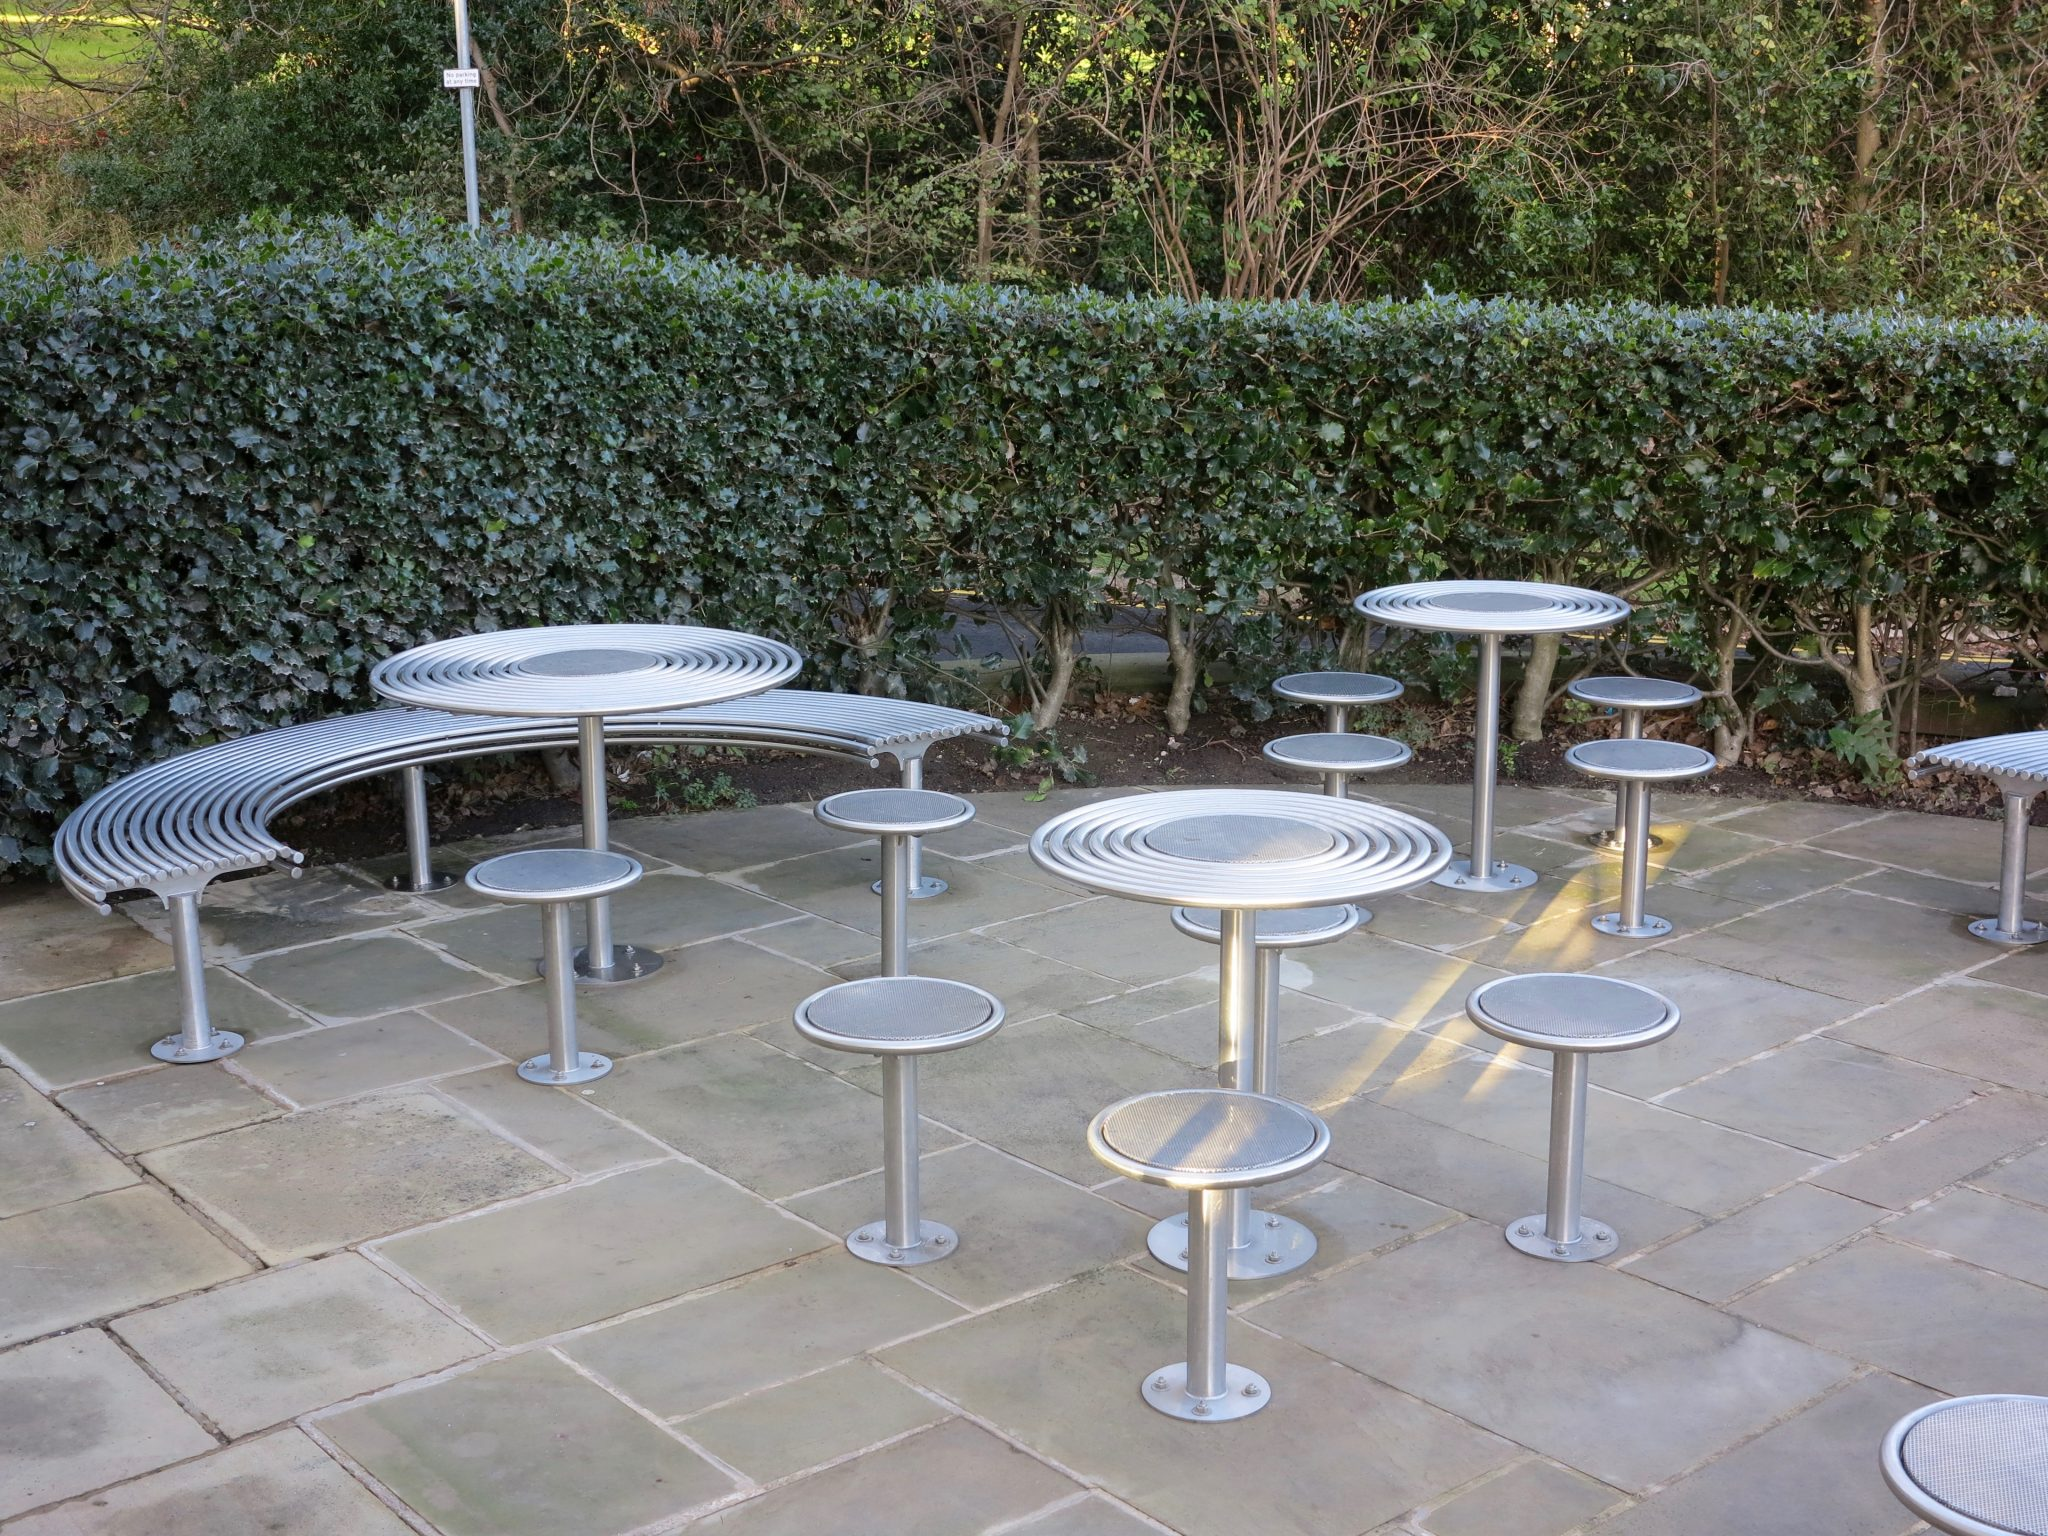 Bespoke street furniture for the University of Nottingham ...